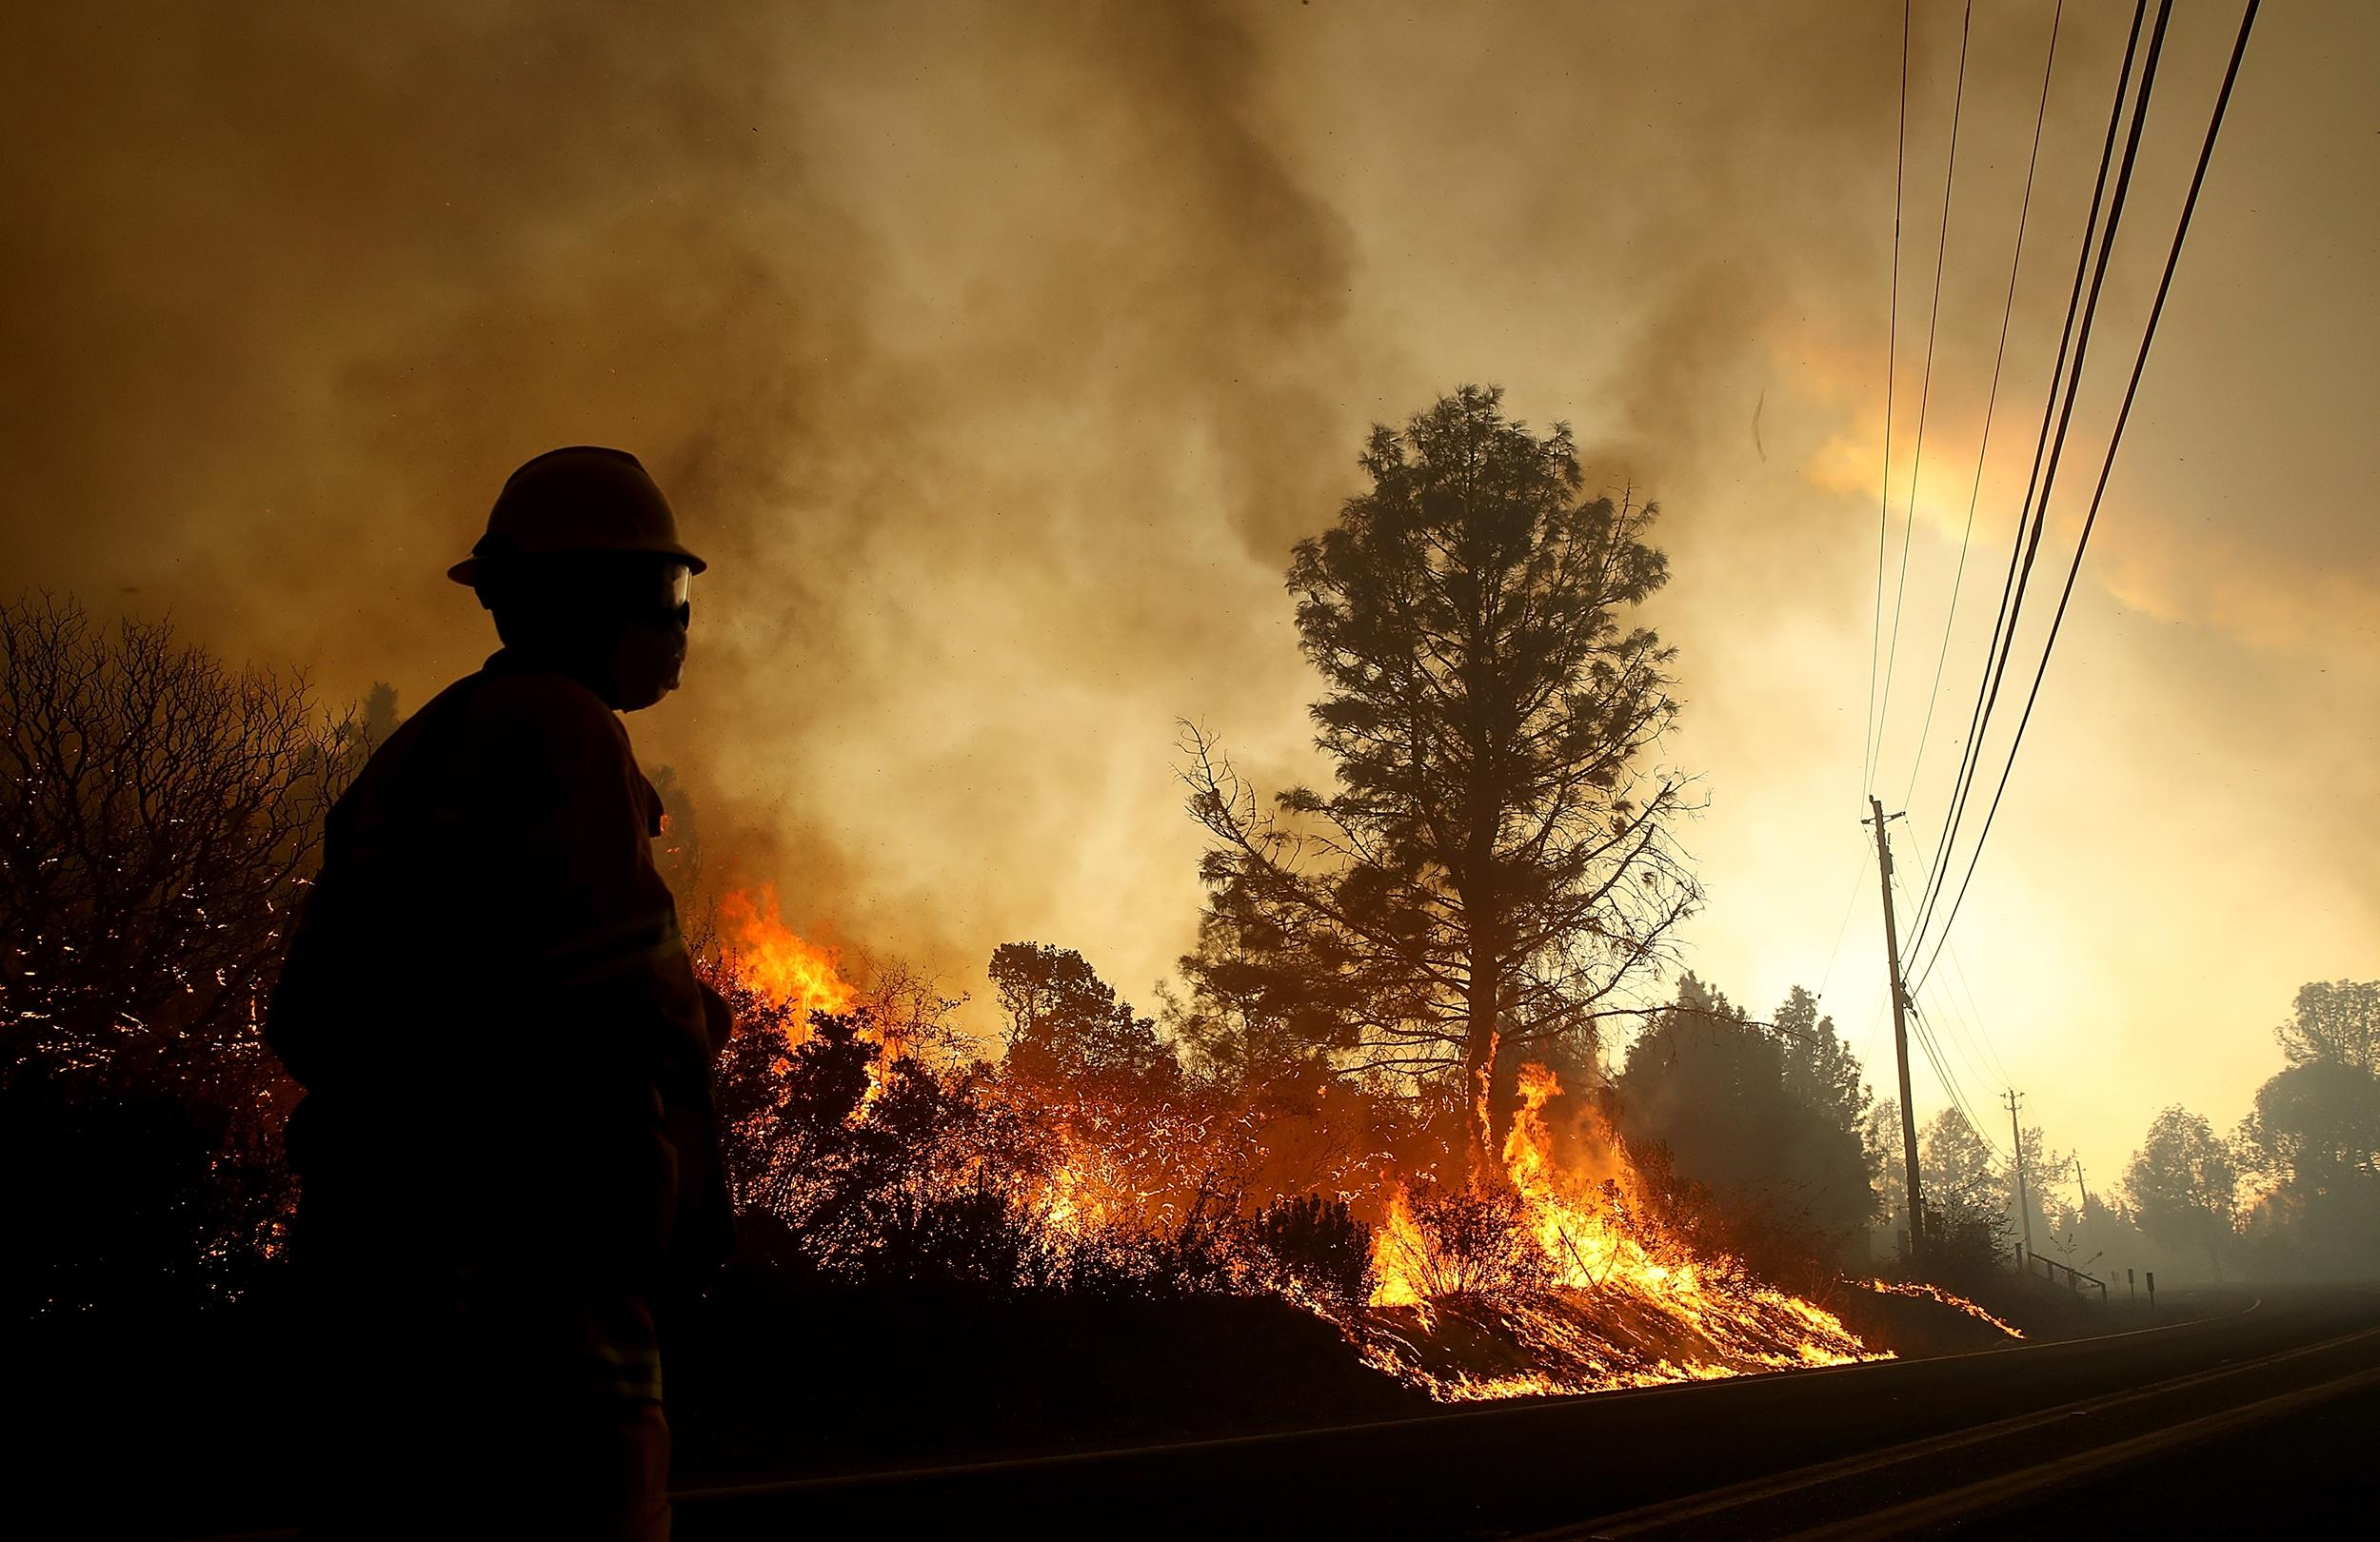 PG&E to plead guilty to involuntary manslaughter charges in deadly California wildfire